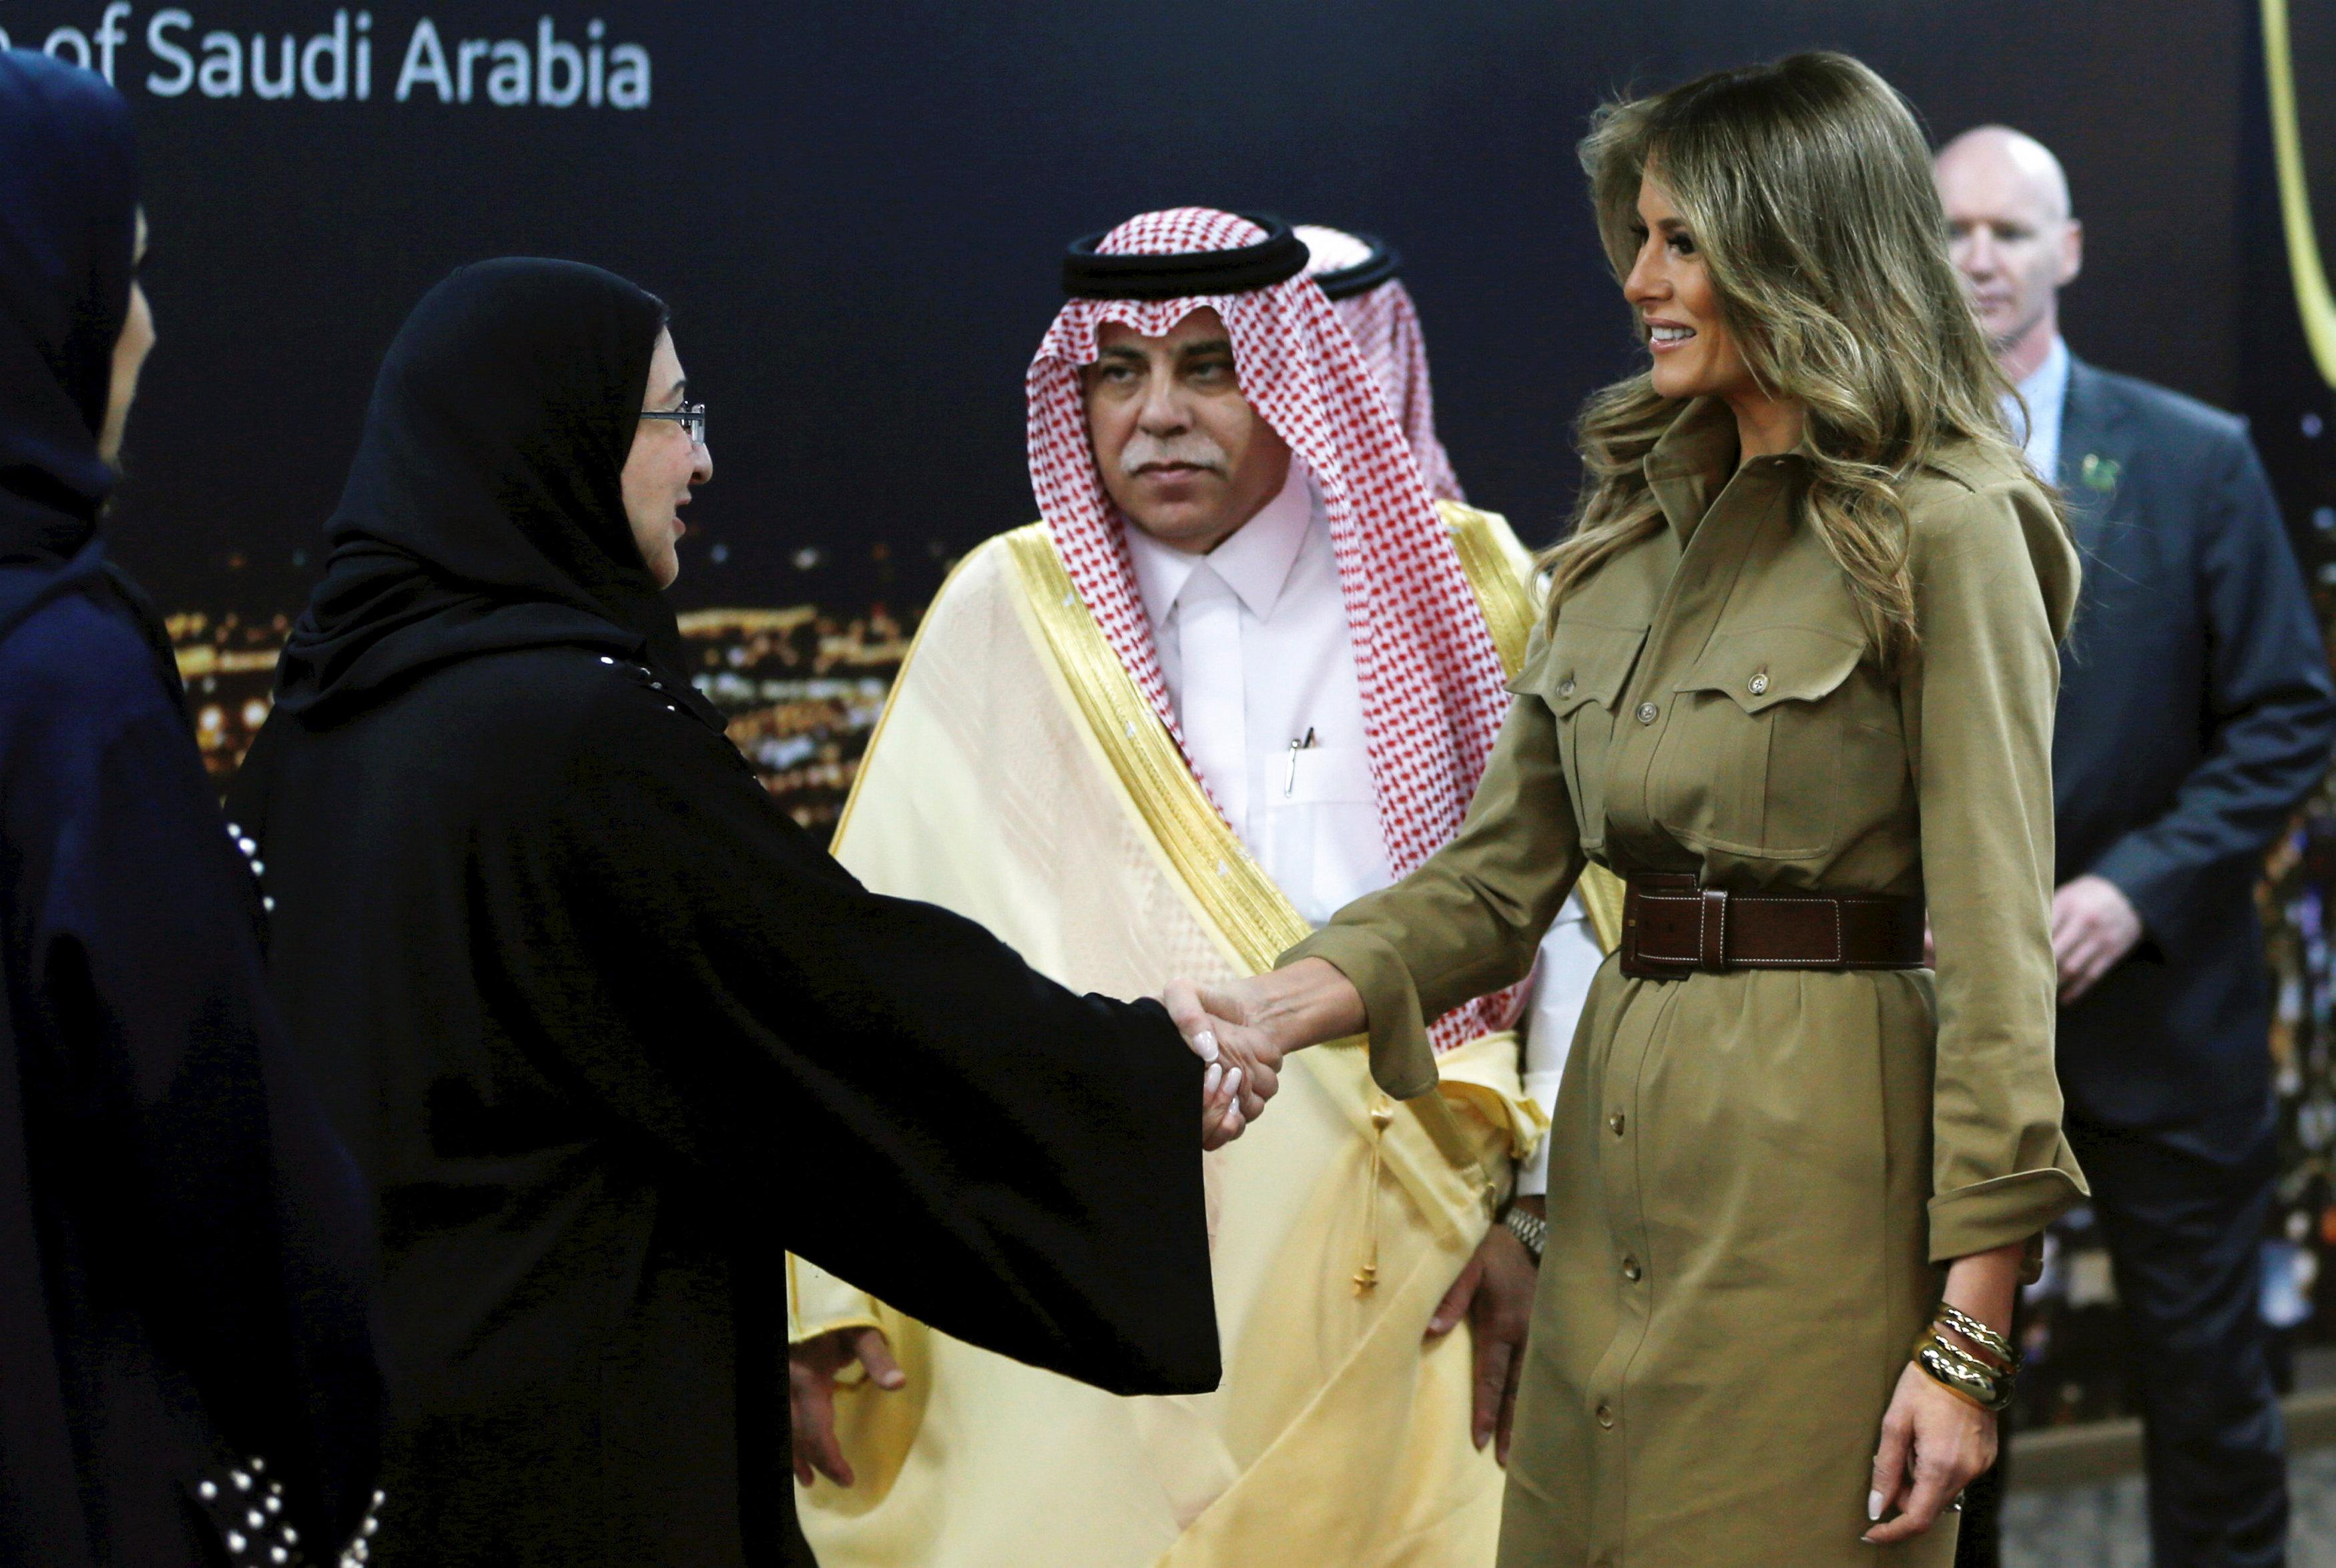 b1191e78e First lady Melania Trump is greeted as she visits GE All women business  process service center